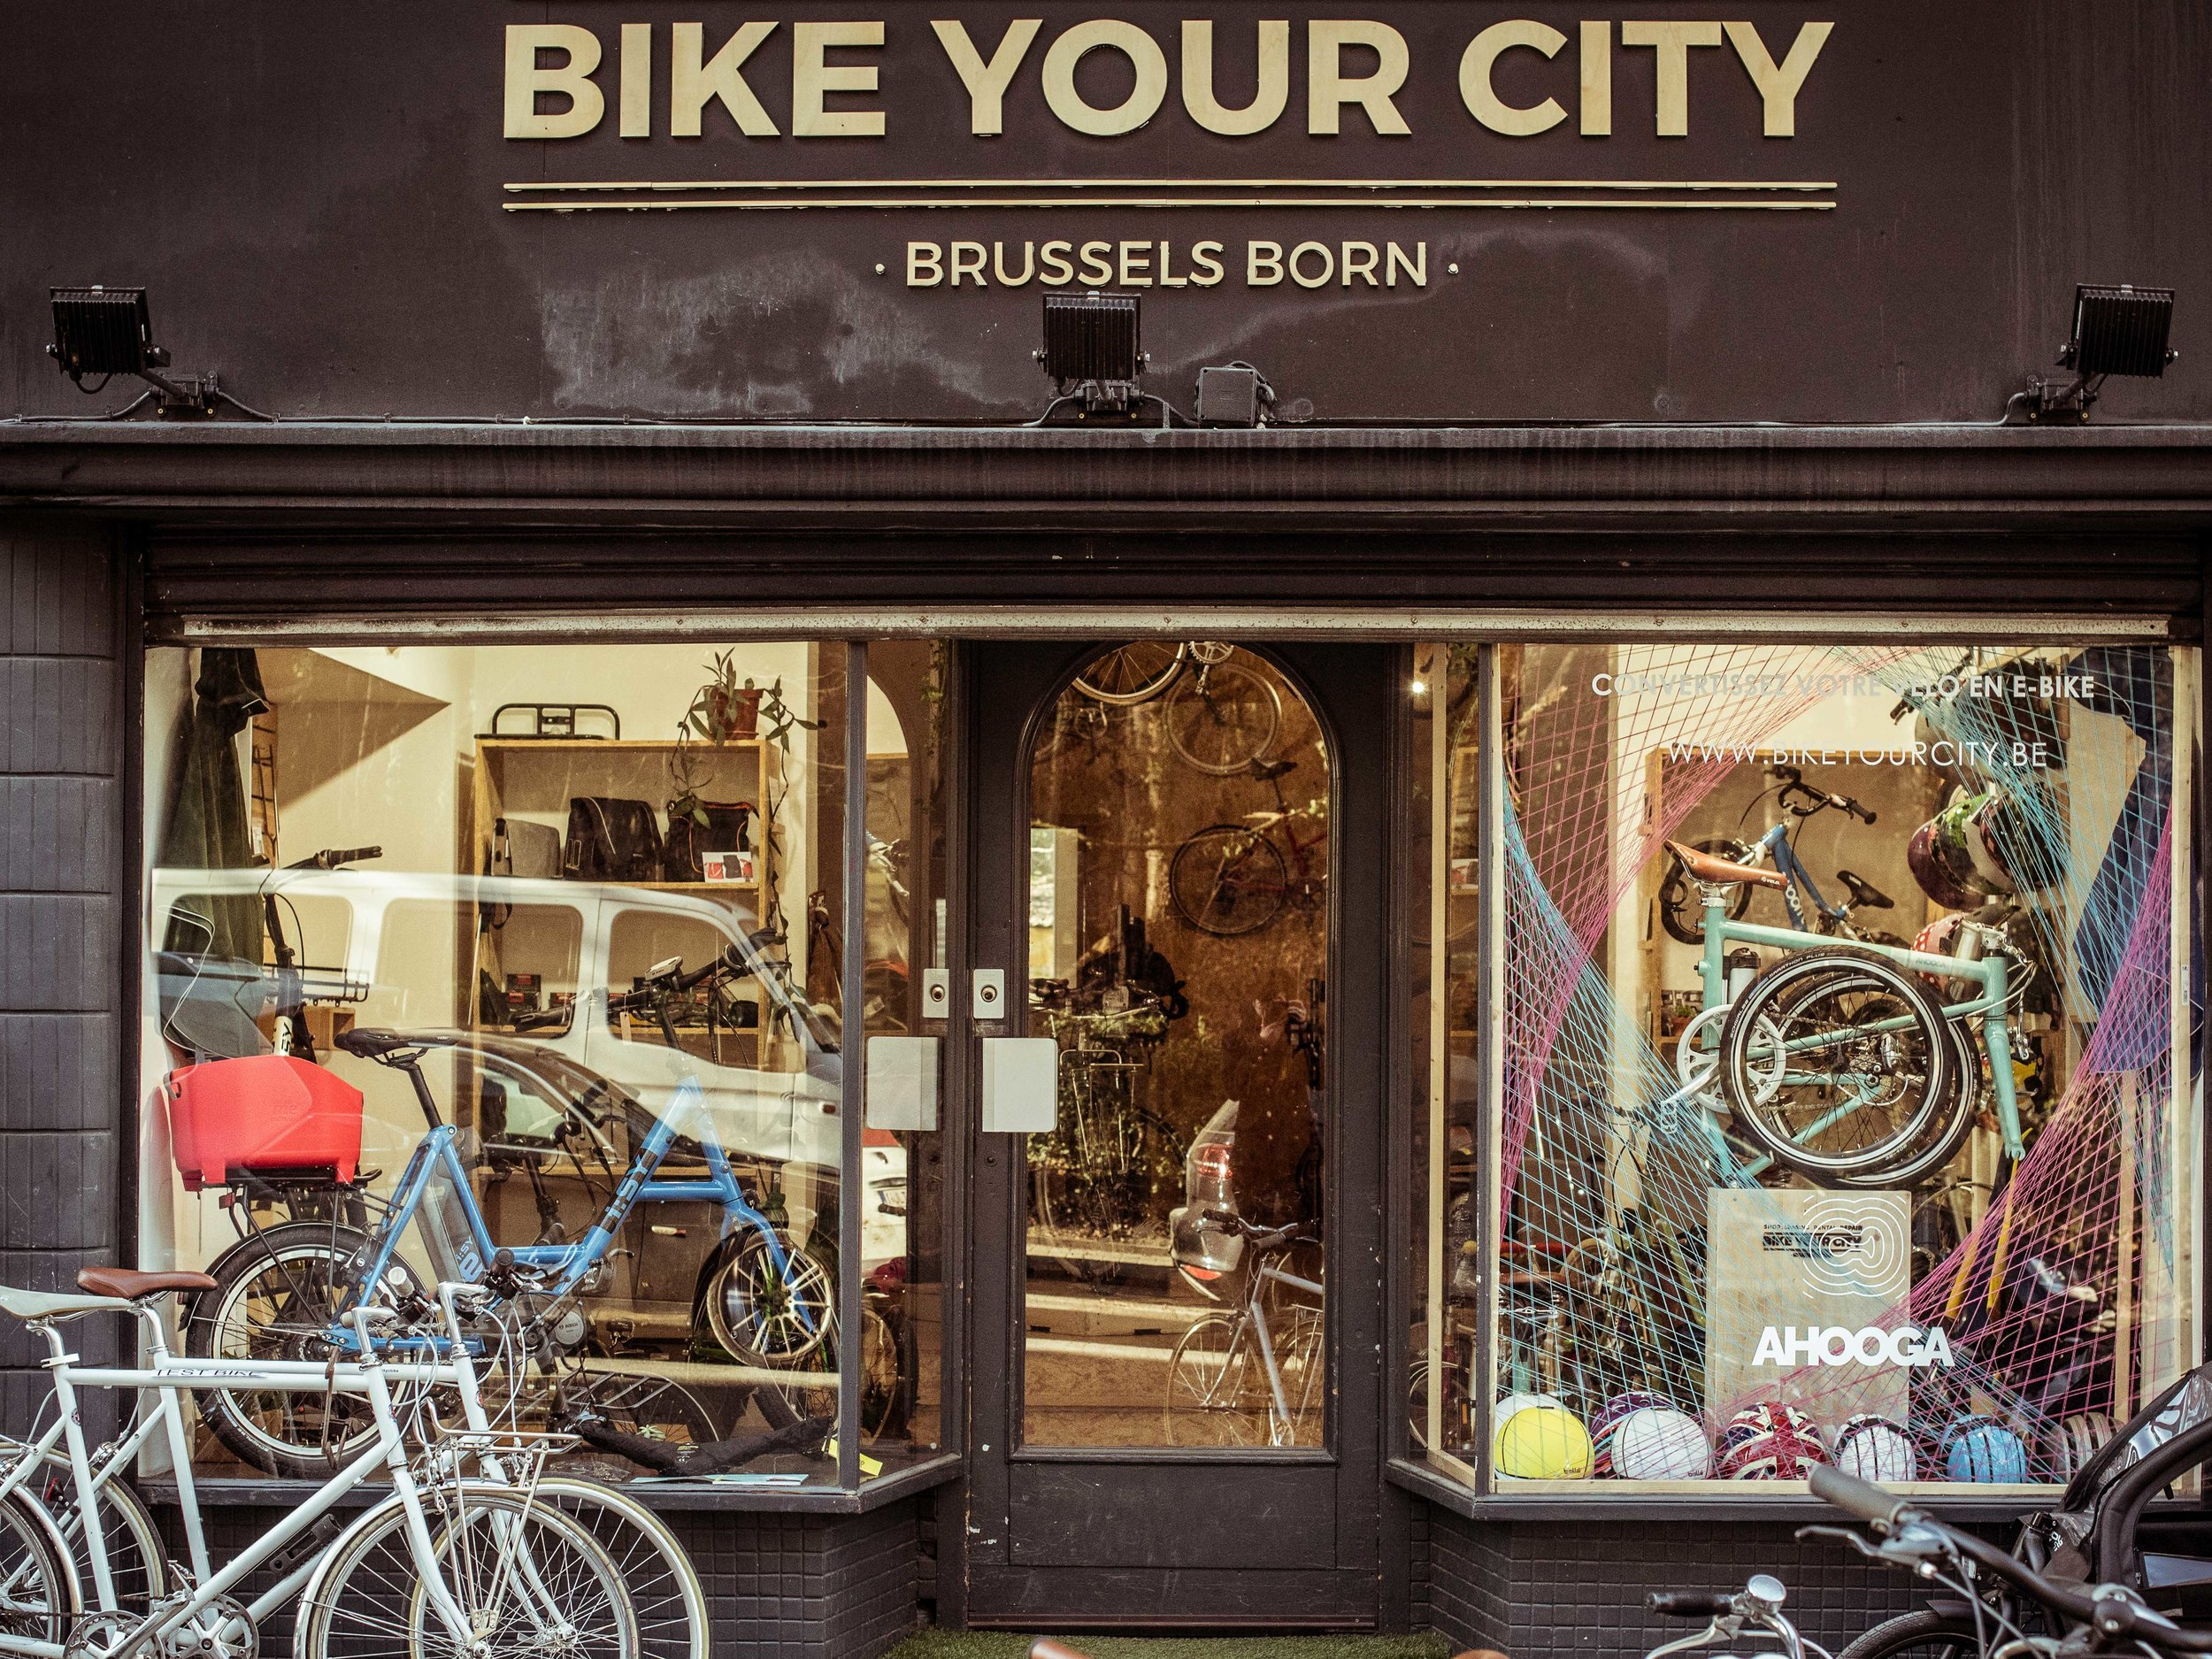 fringale-cycling-shop-bike-your-city-brussels